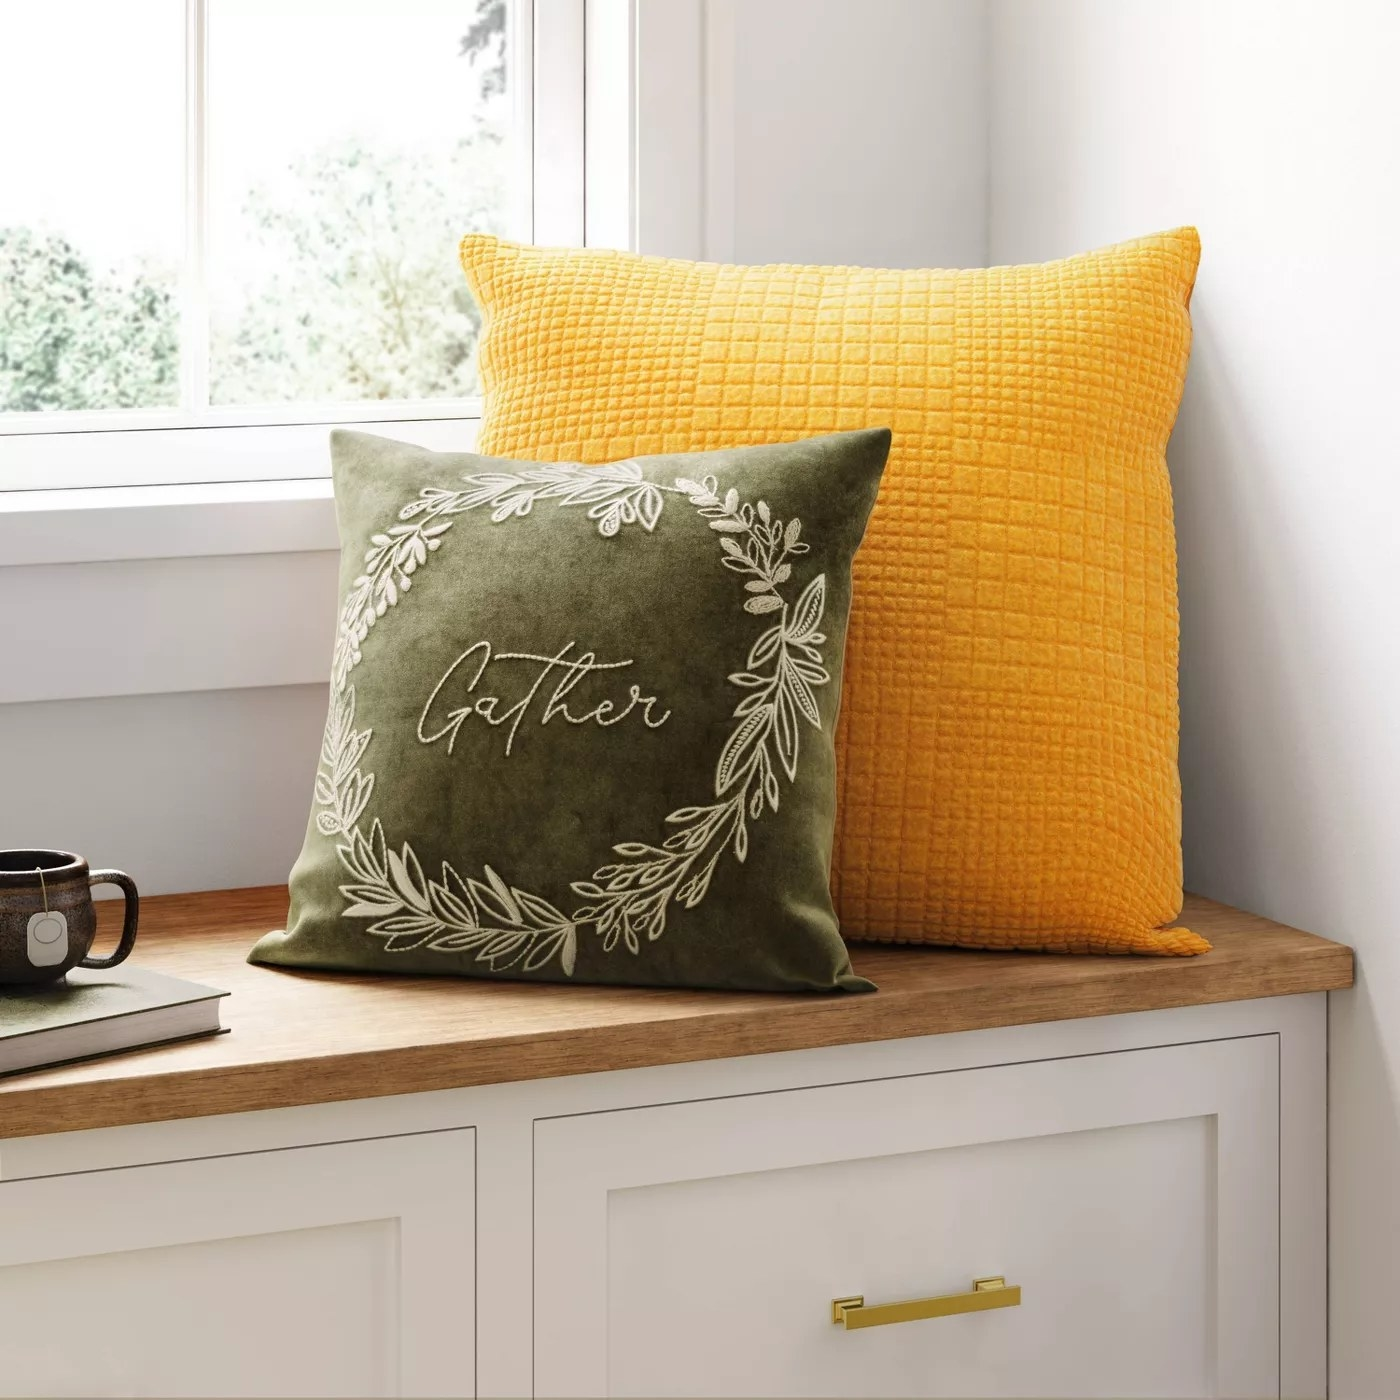 """The pillow with the word """"Gather"""" written on it in white inside a matching circular leaf design"""